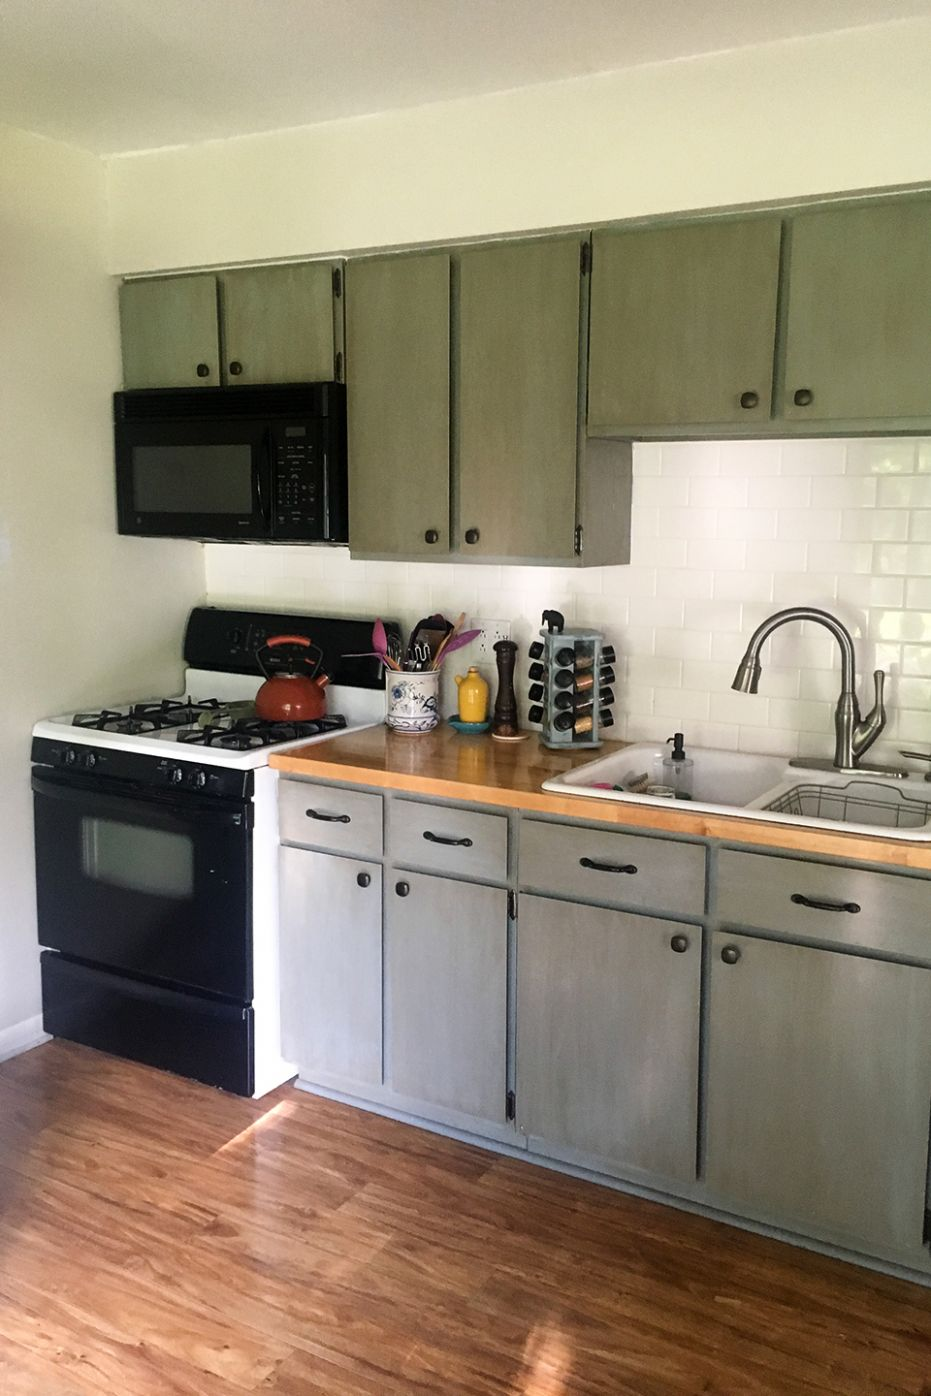 Kitchen Remodel on a Budget: 8 Low-Cost Ideas to Help You Spend Less